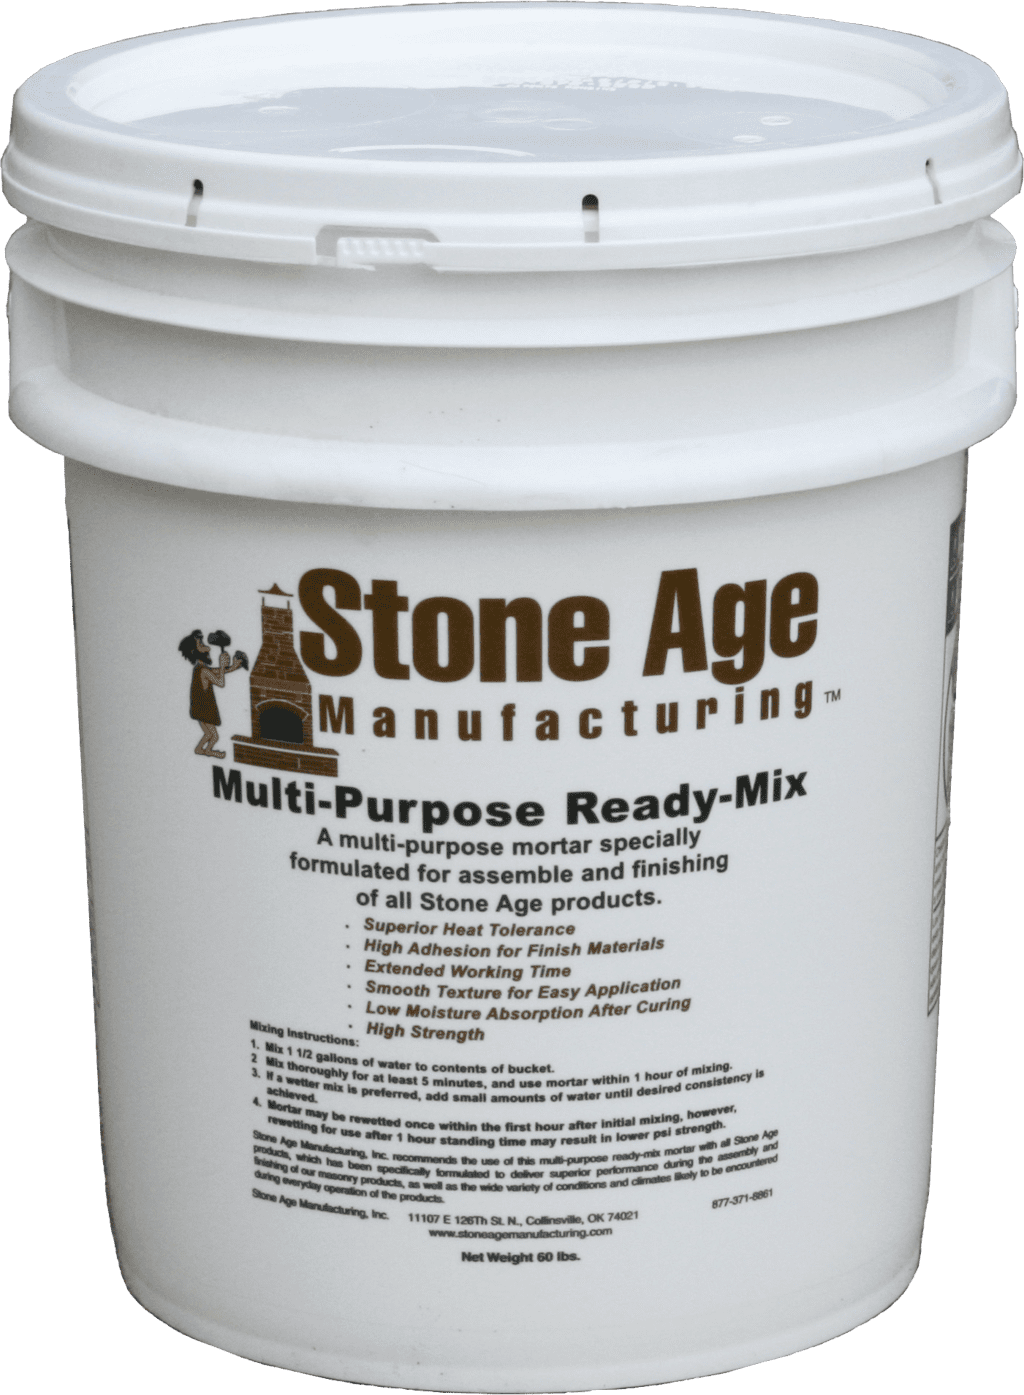 Stone Age Multi-Purpose Ready-Mix